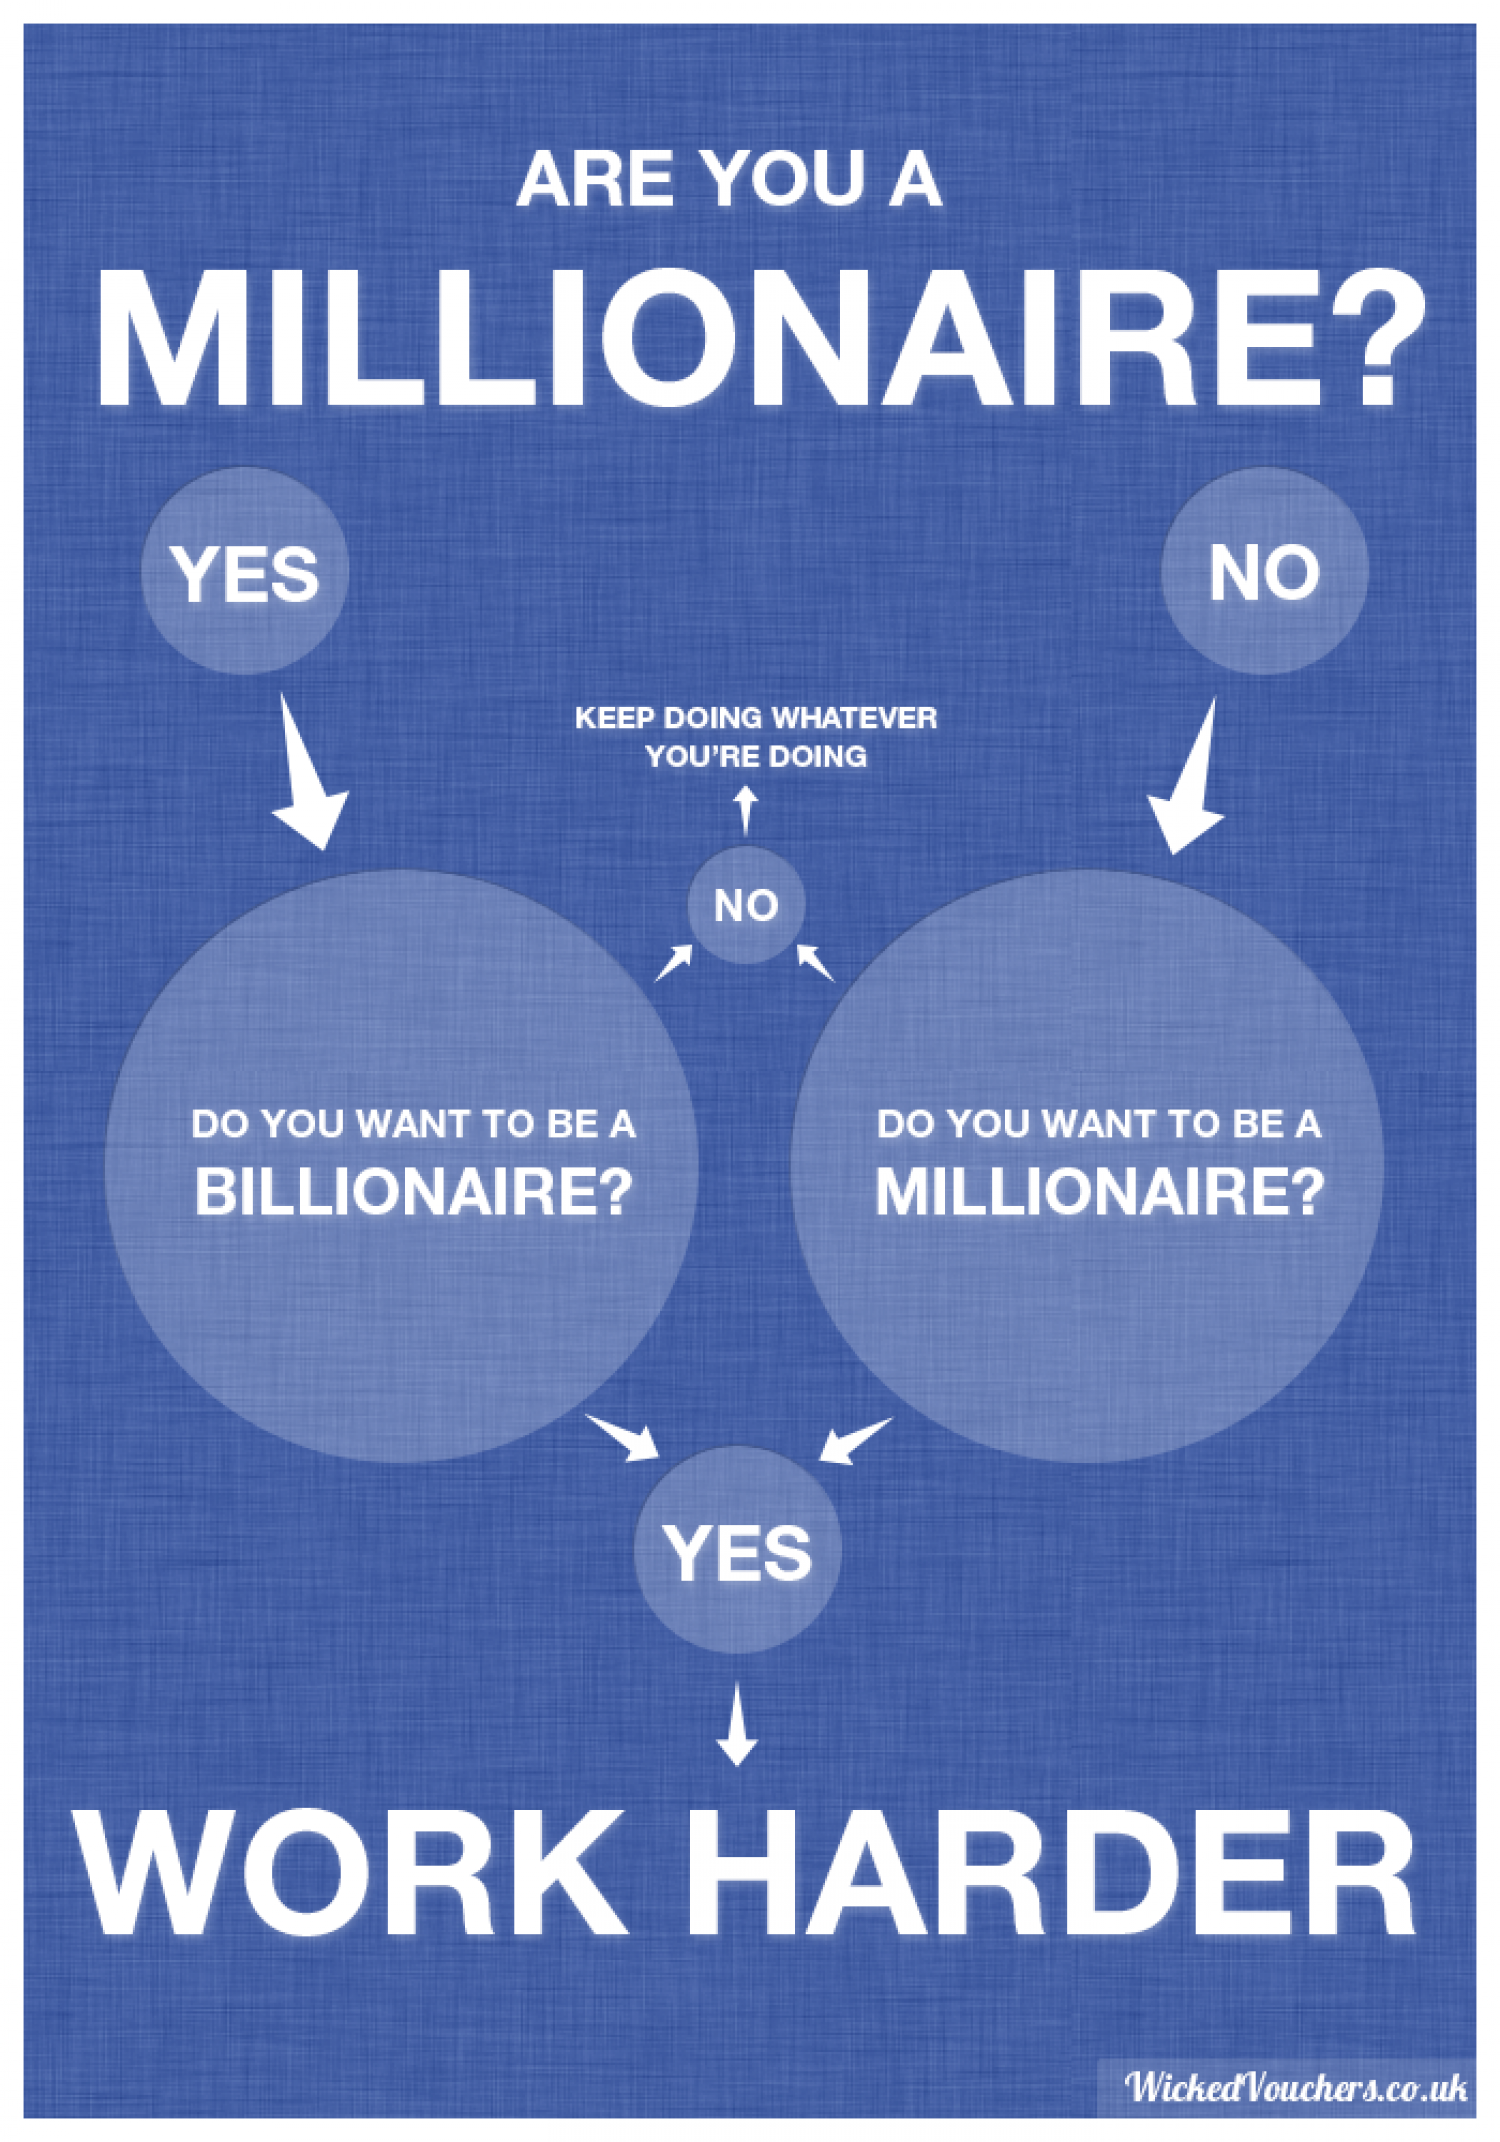 Are You A Millionaire? Infographic